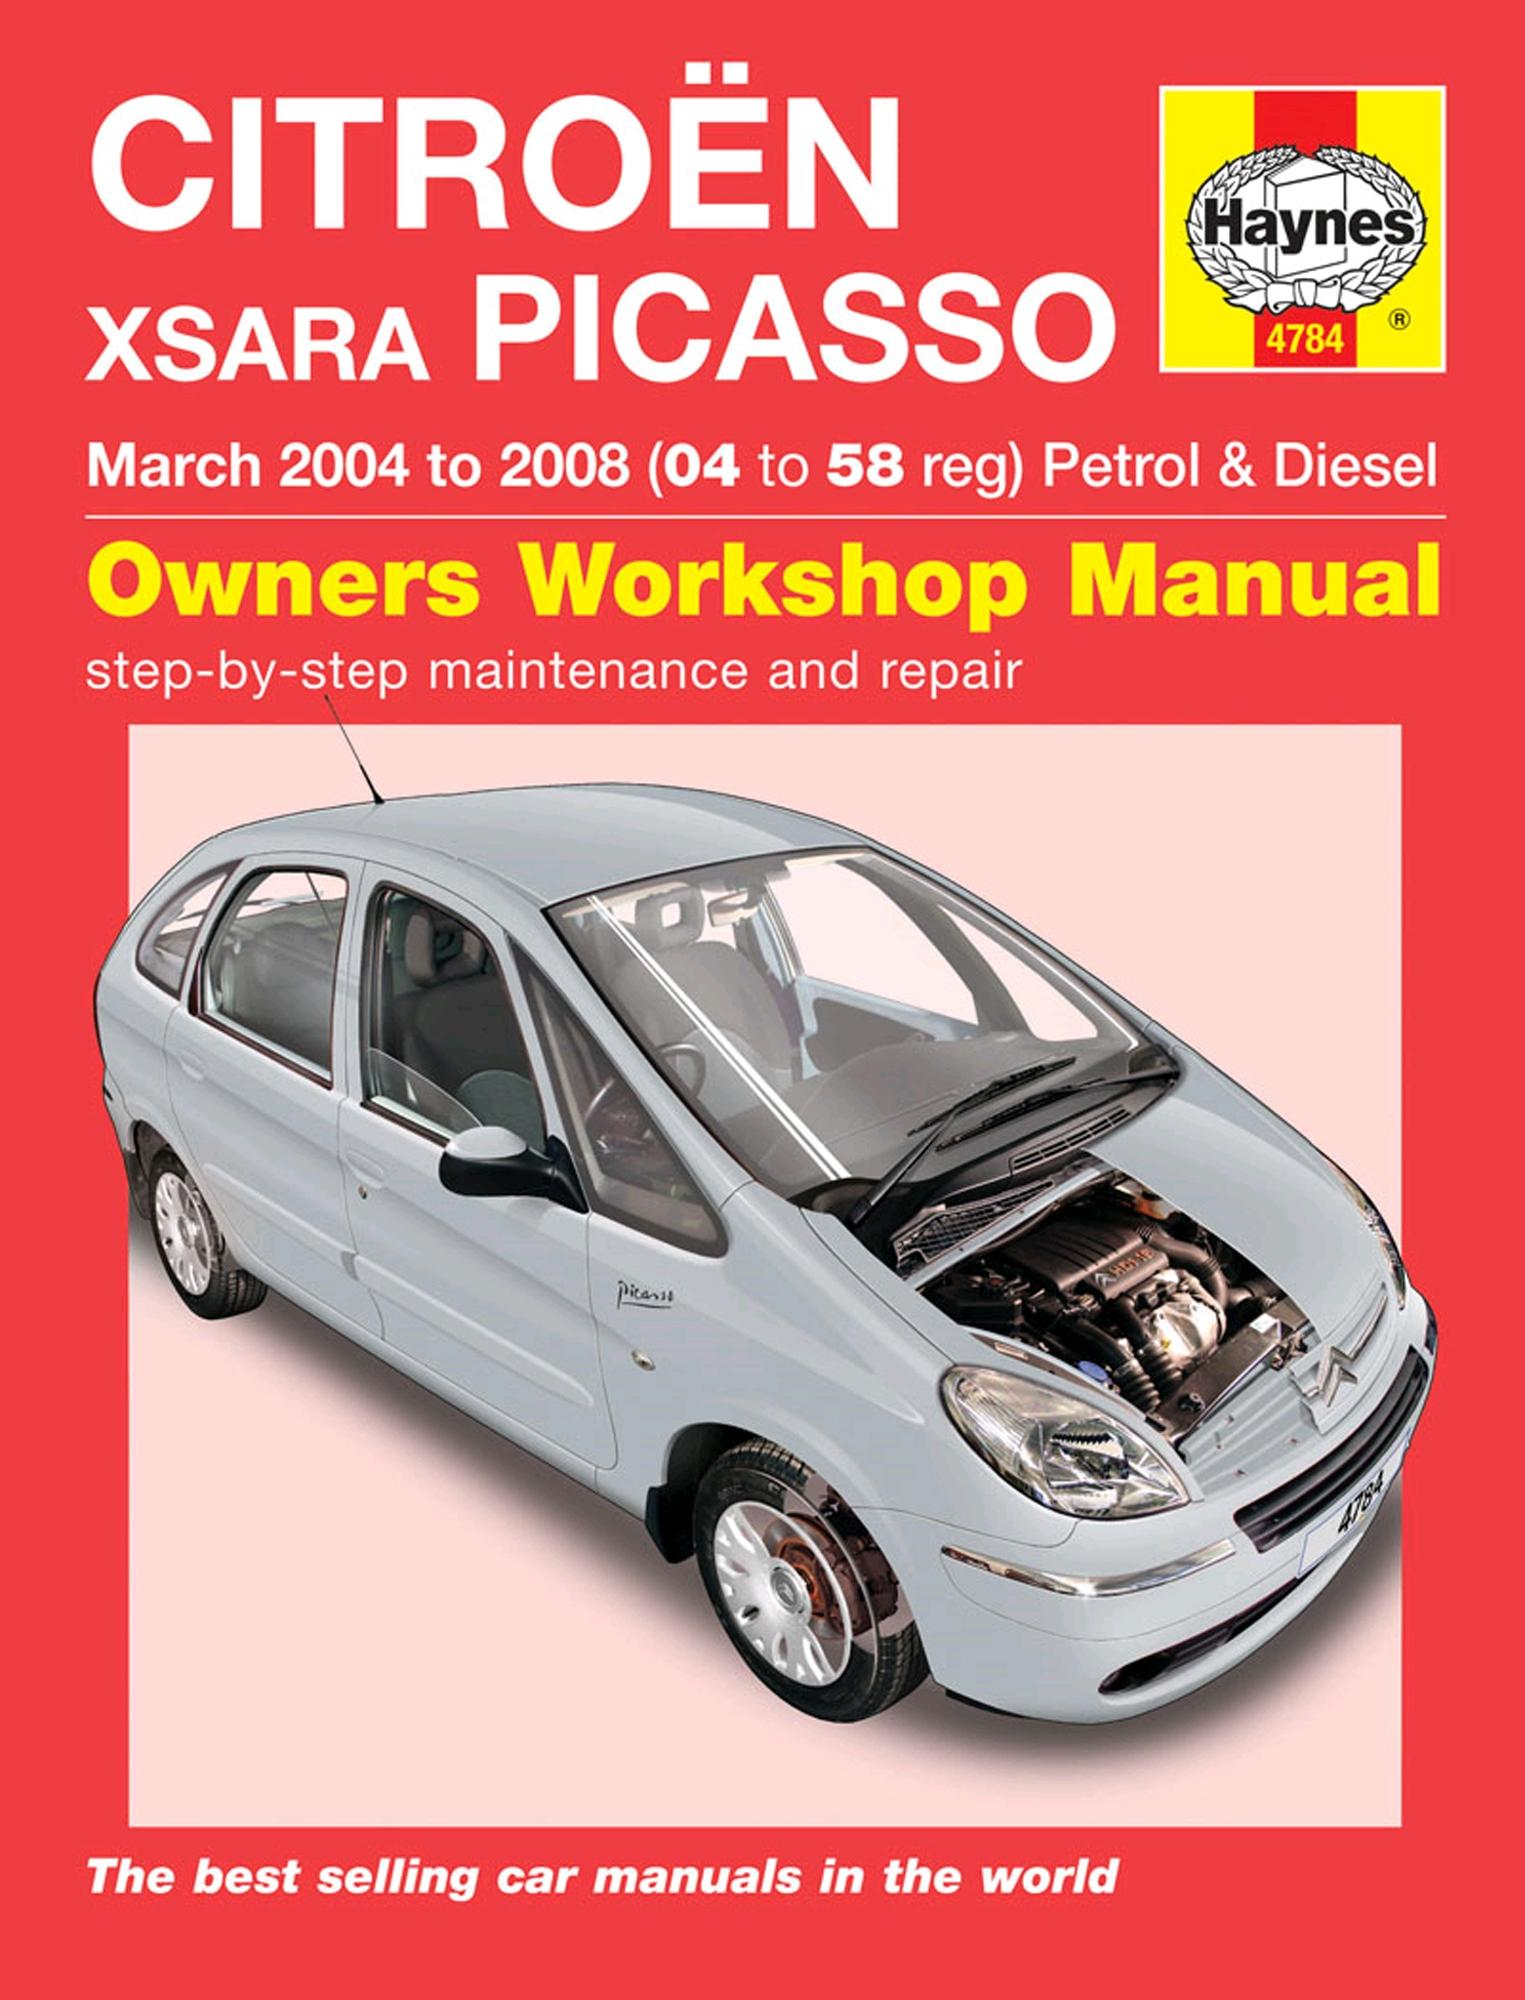 Haynes Owners Workshop Manual Citroen Xsara Picasso 2004-2008 Petrol Diesel